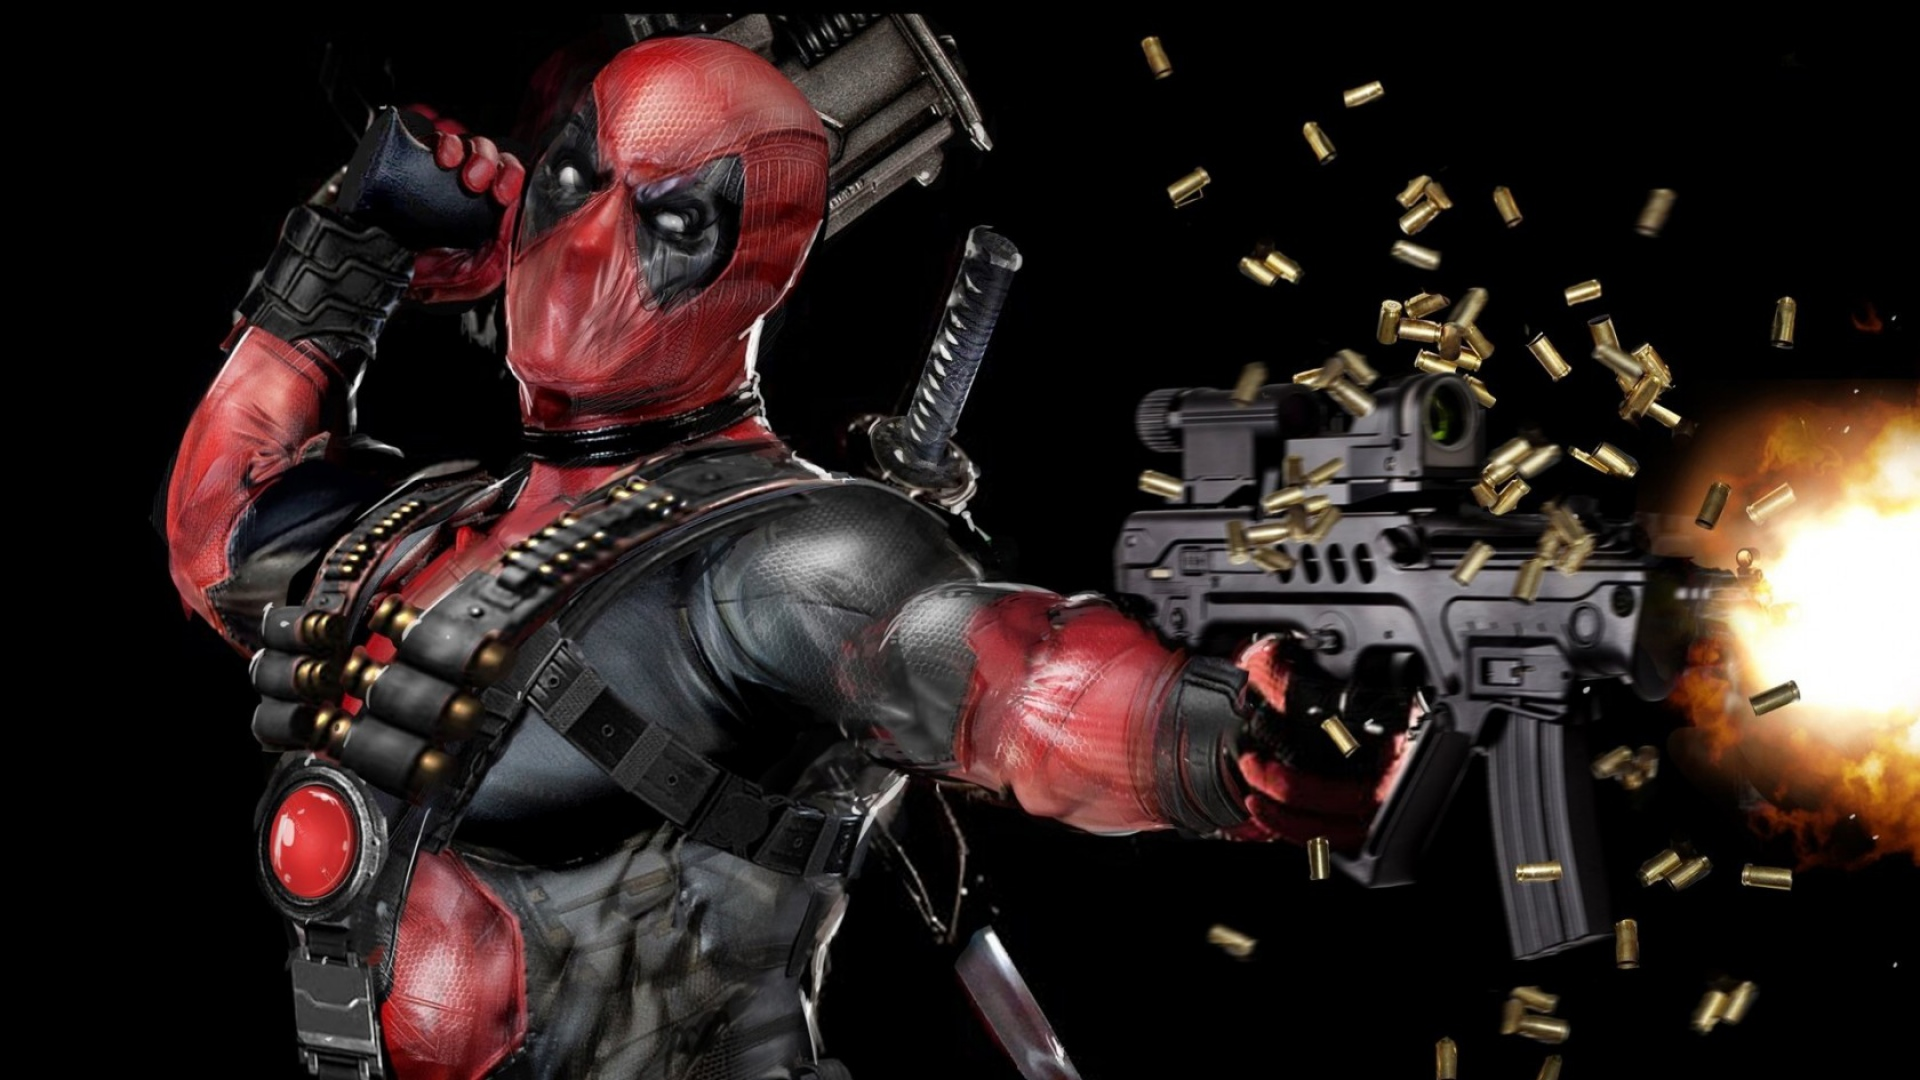 Wallpaper 1920x1080 Deadpool Mask Gun Automatic Full HD 1080p HD 1920x1080